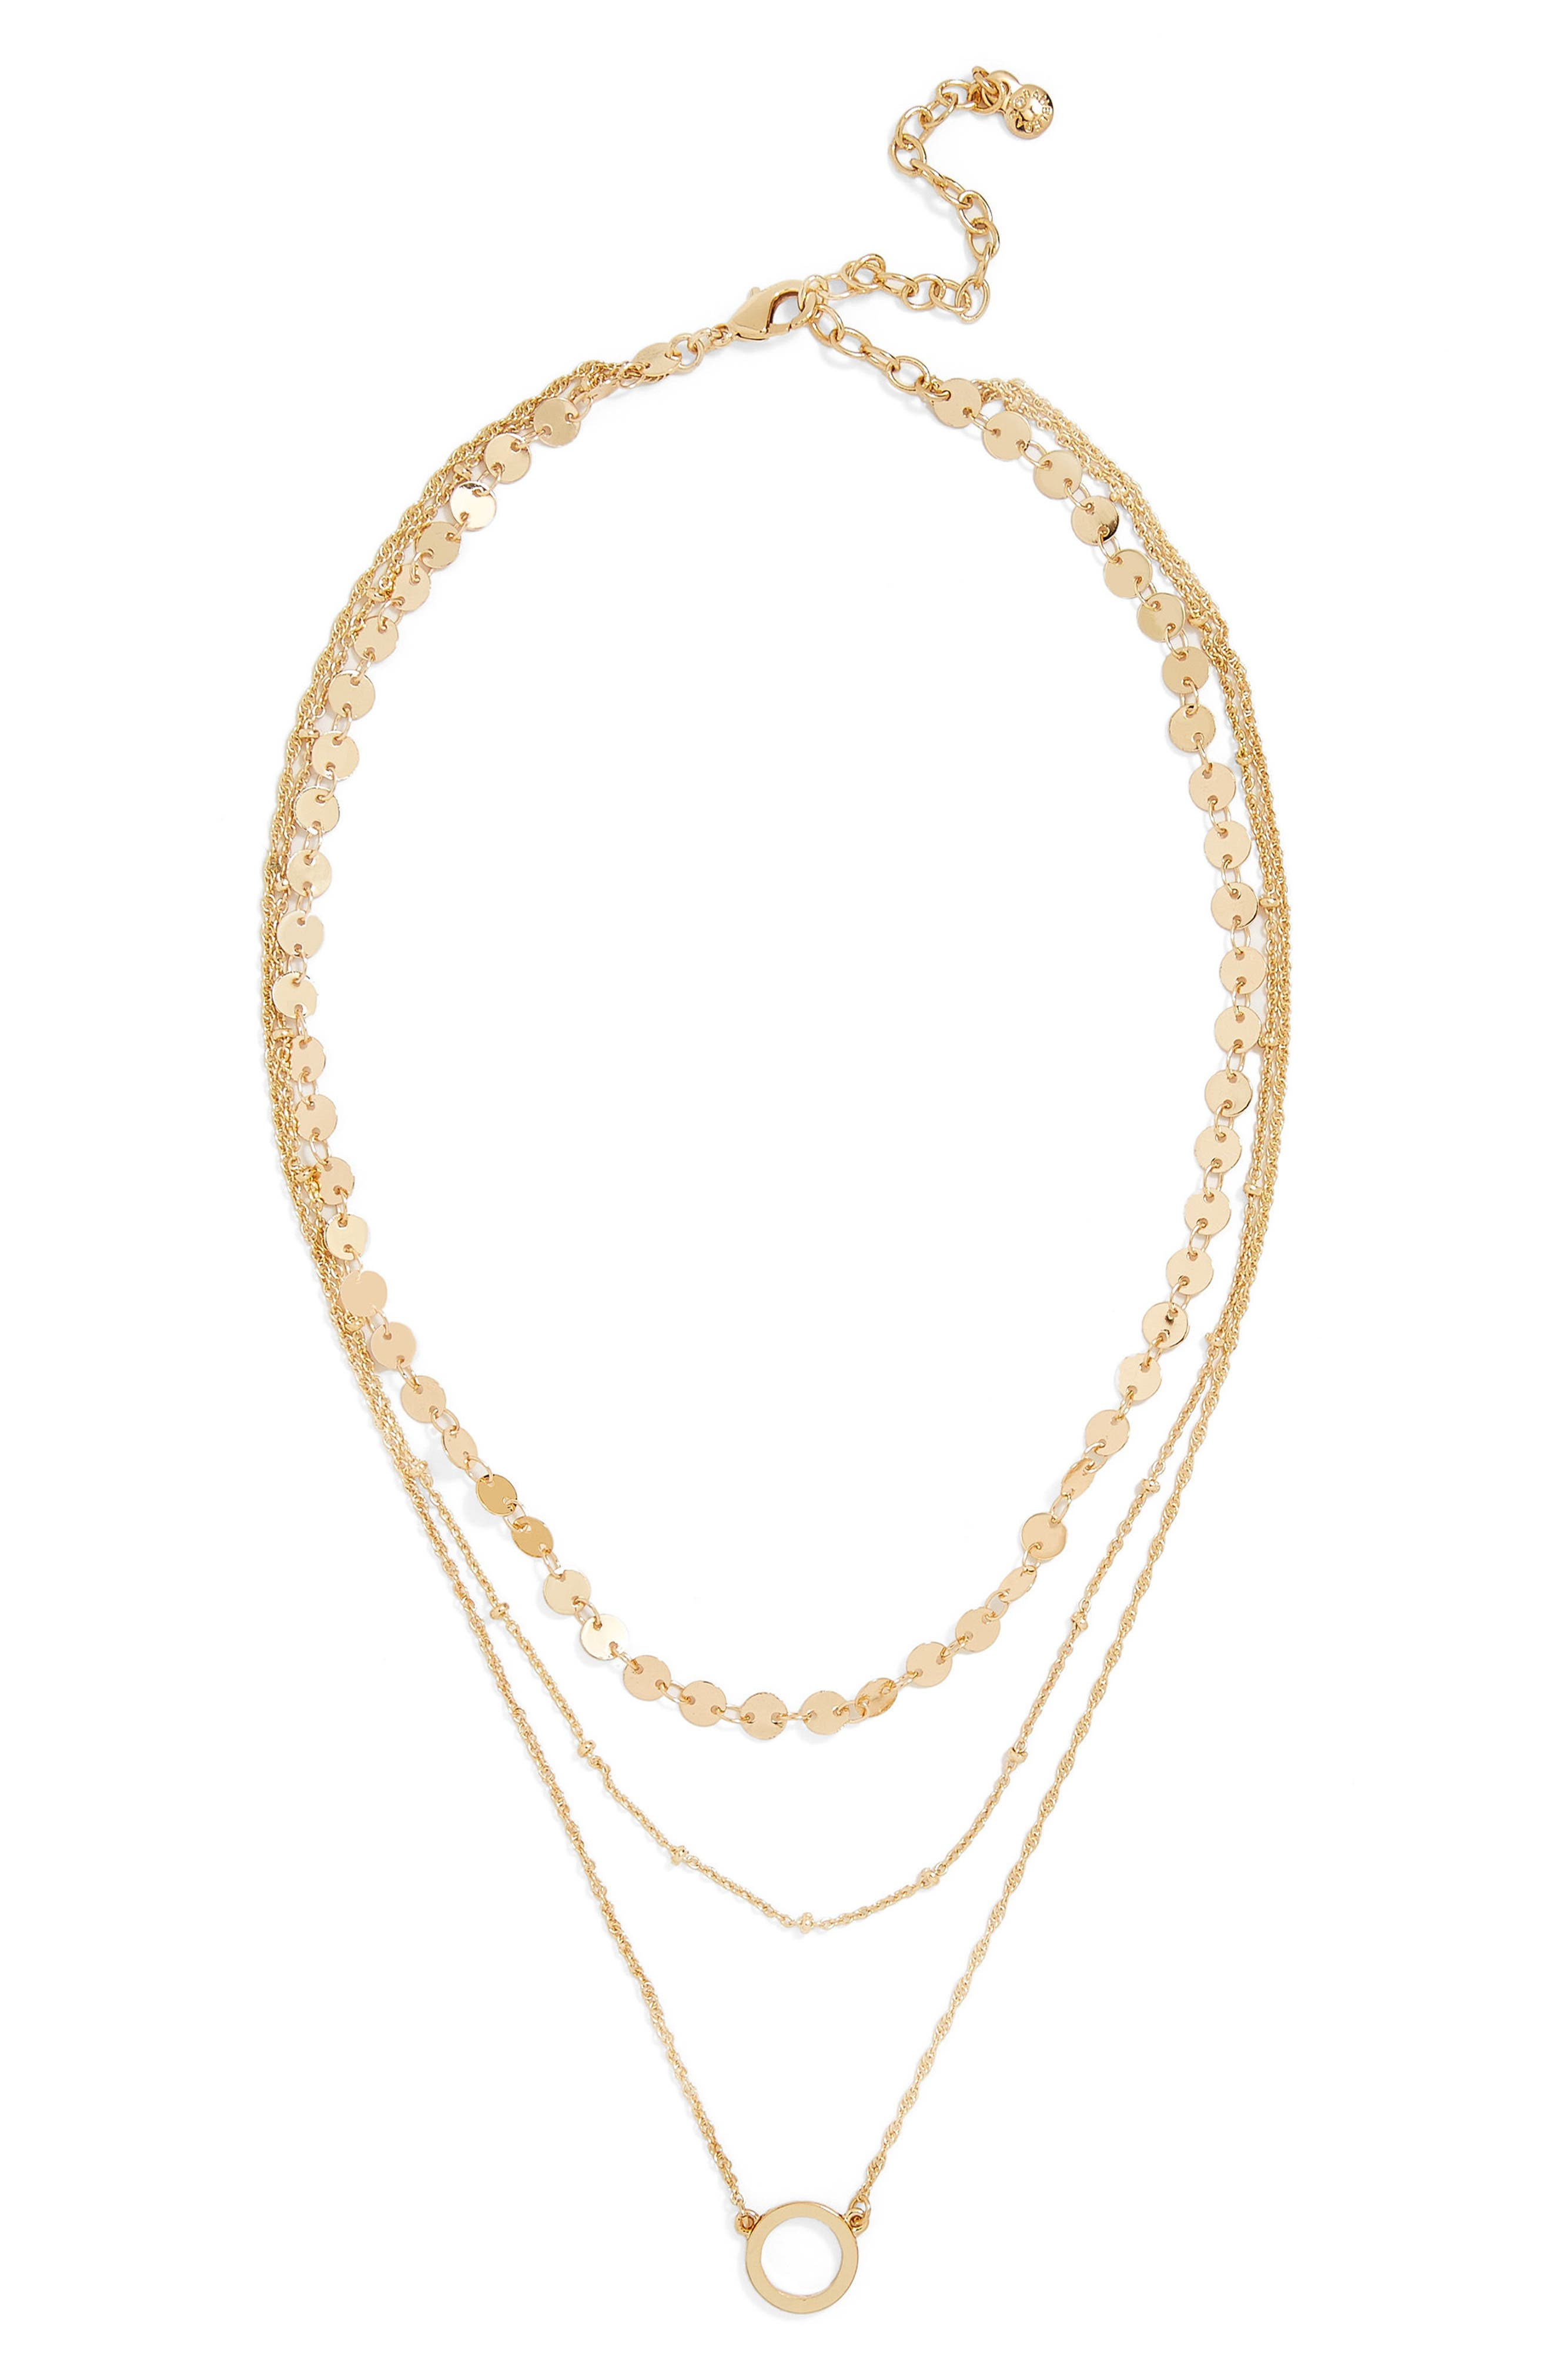 Main Image - BaubleBar Adrielle Triple Strand Necklace